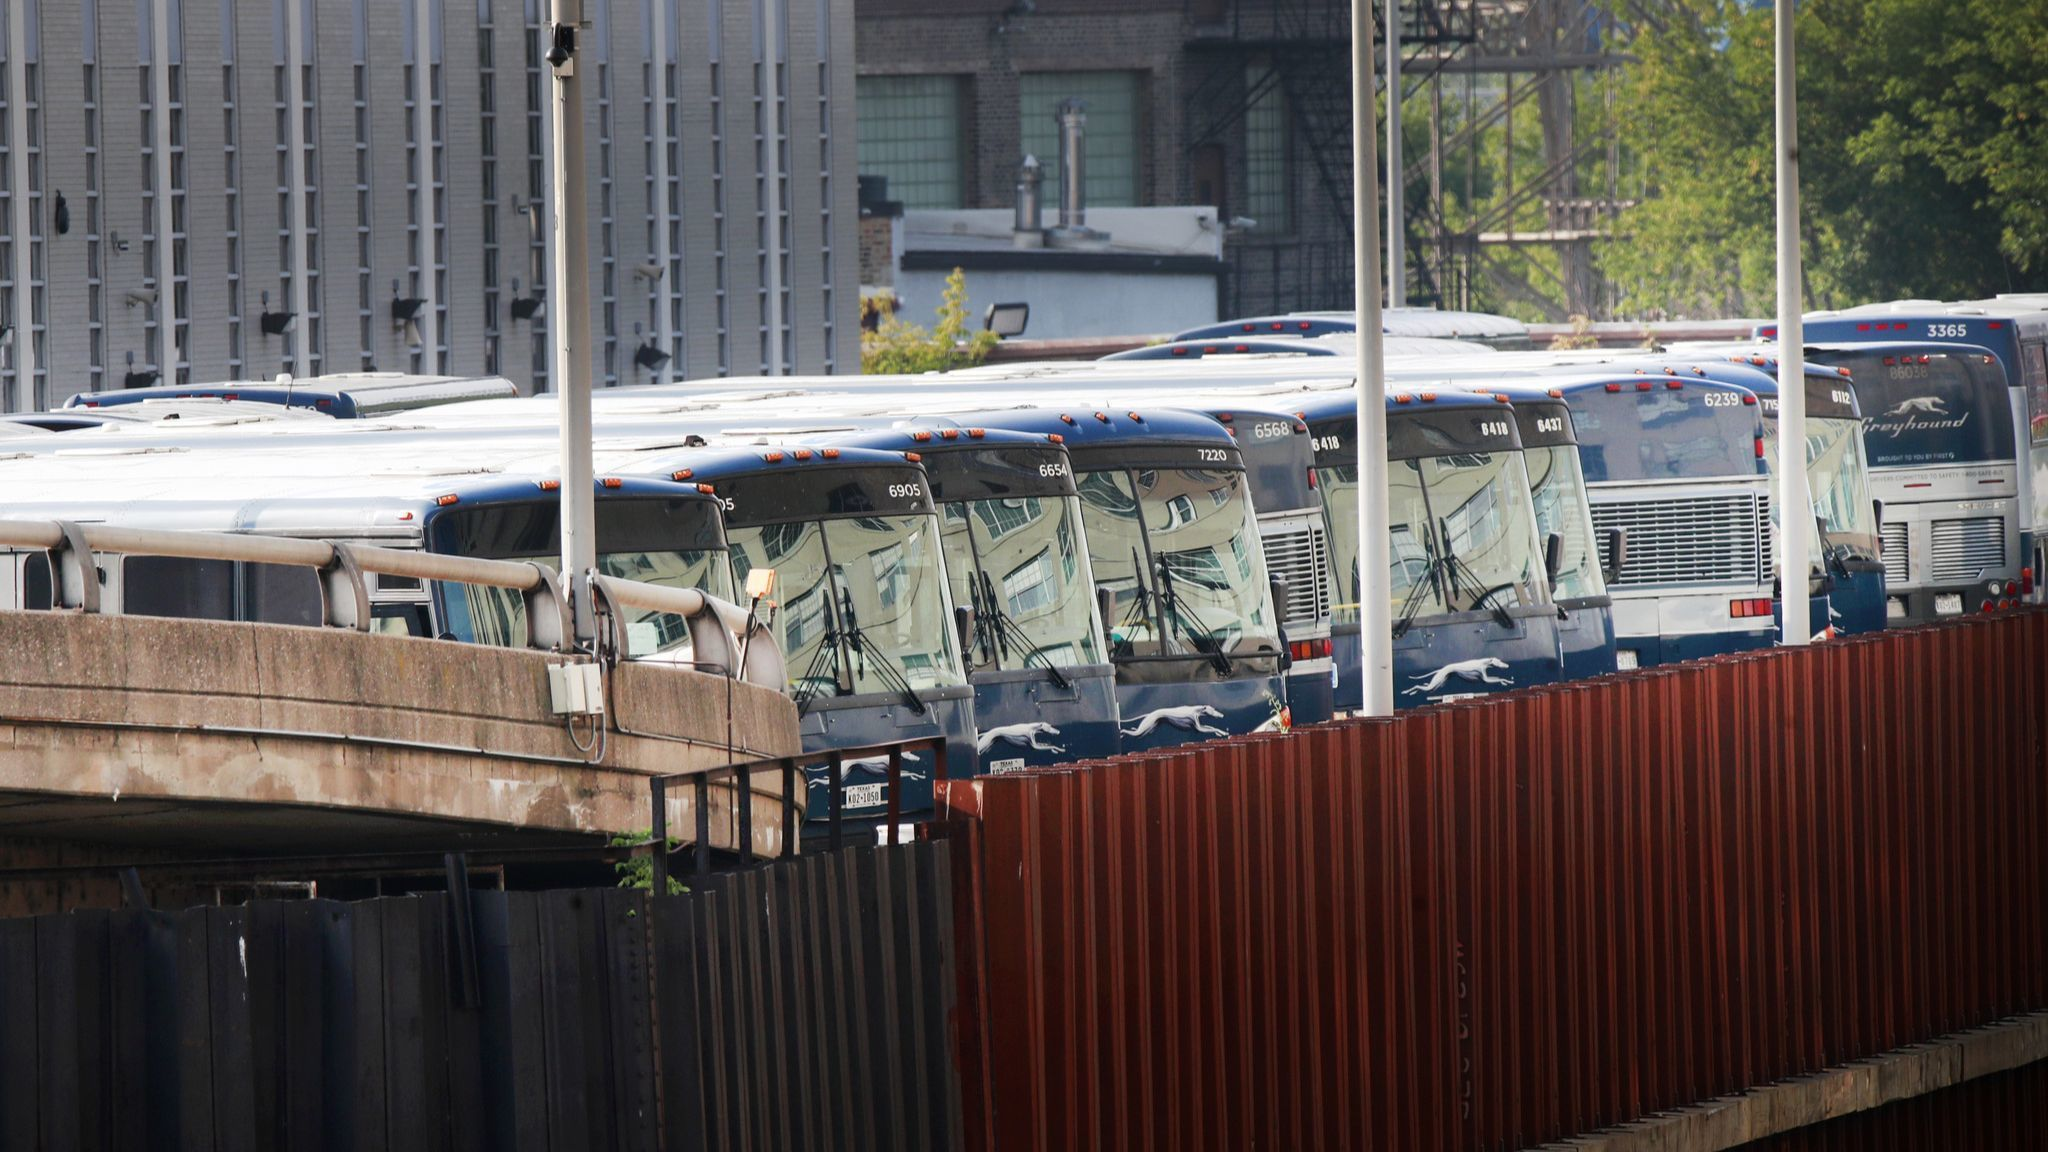 Canadian developer pays $38 million for Greyhound's Goose Island bus maintenence facility